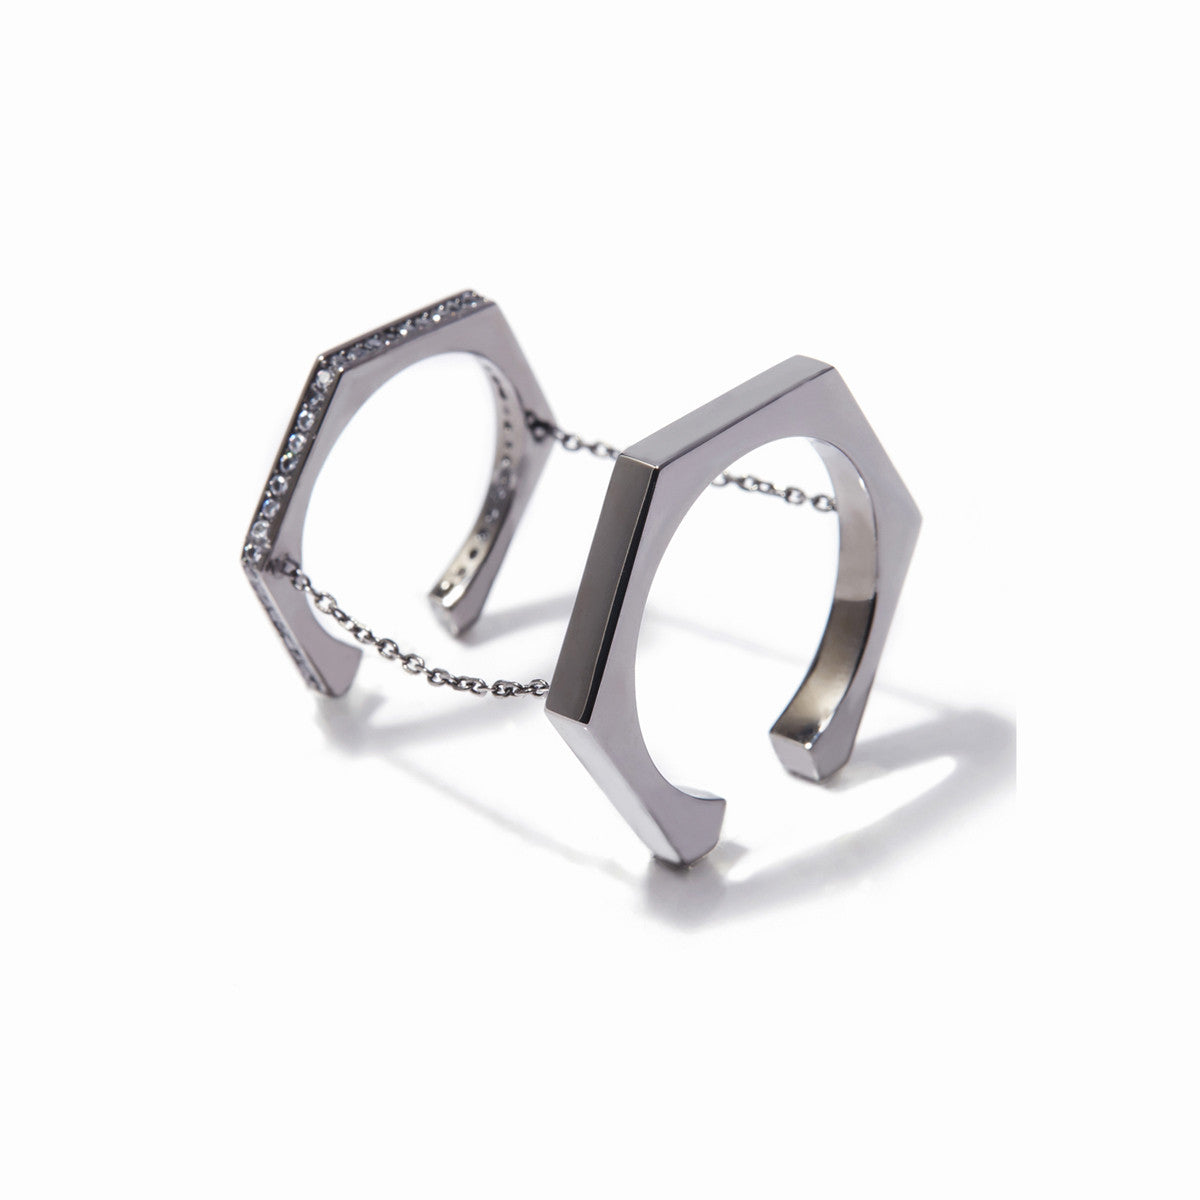 Aris Double Chained Rings - Hematite